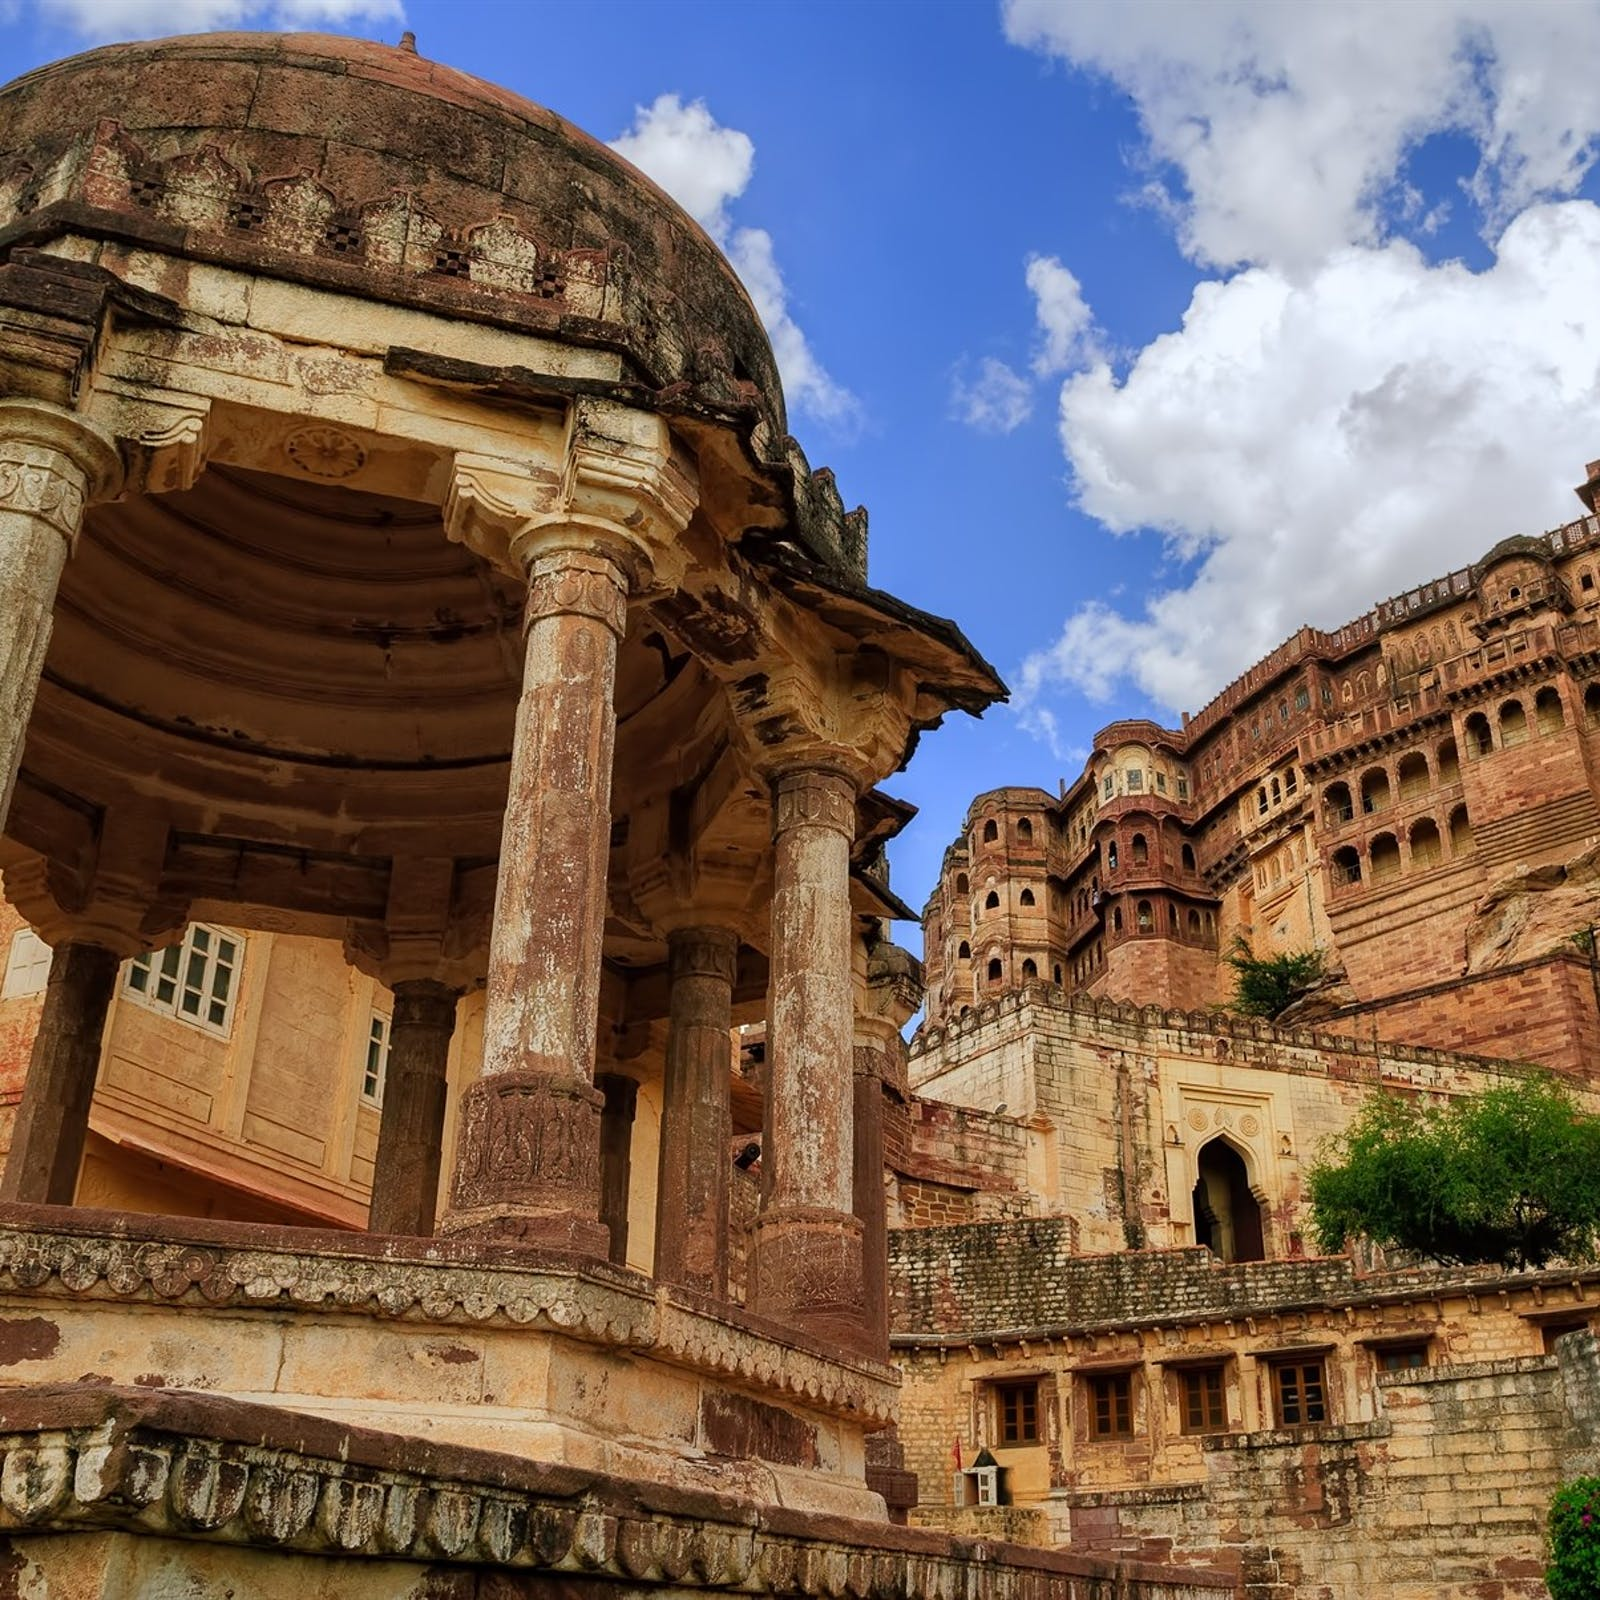 Bridge Street Auto >> Rajasthan Cities, Forts and Palaces Tour India